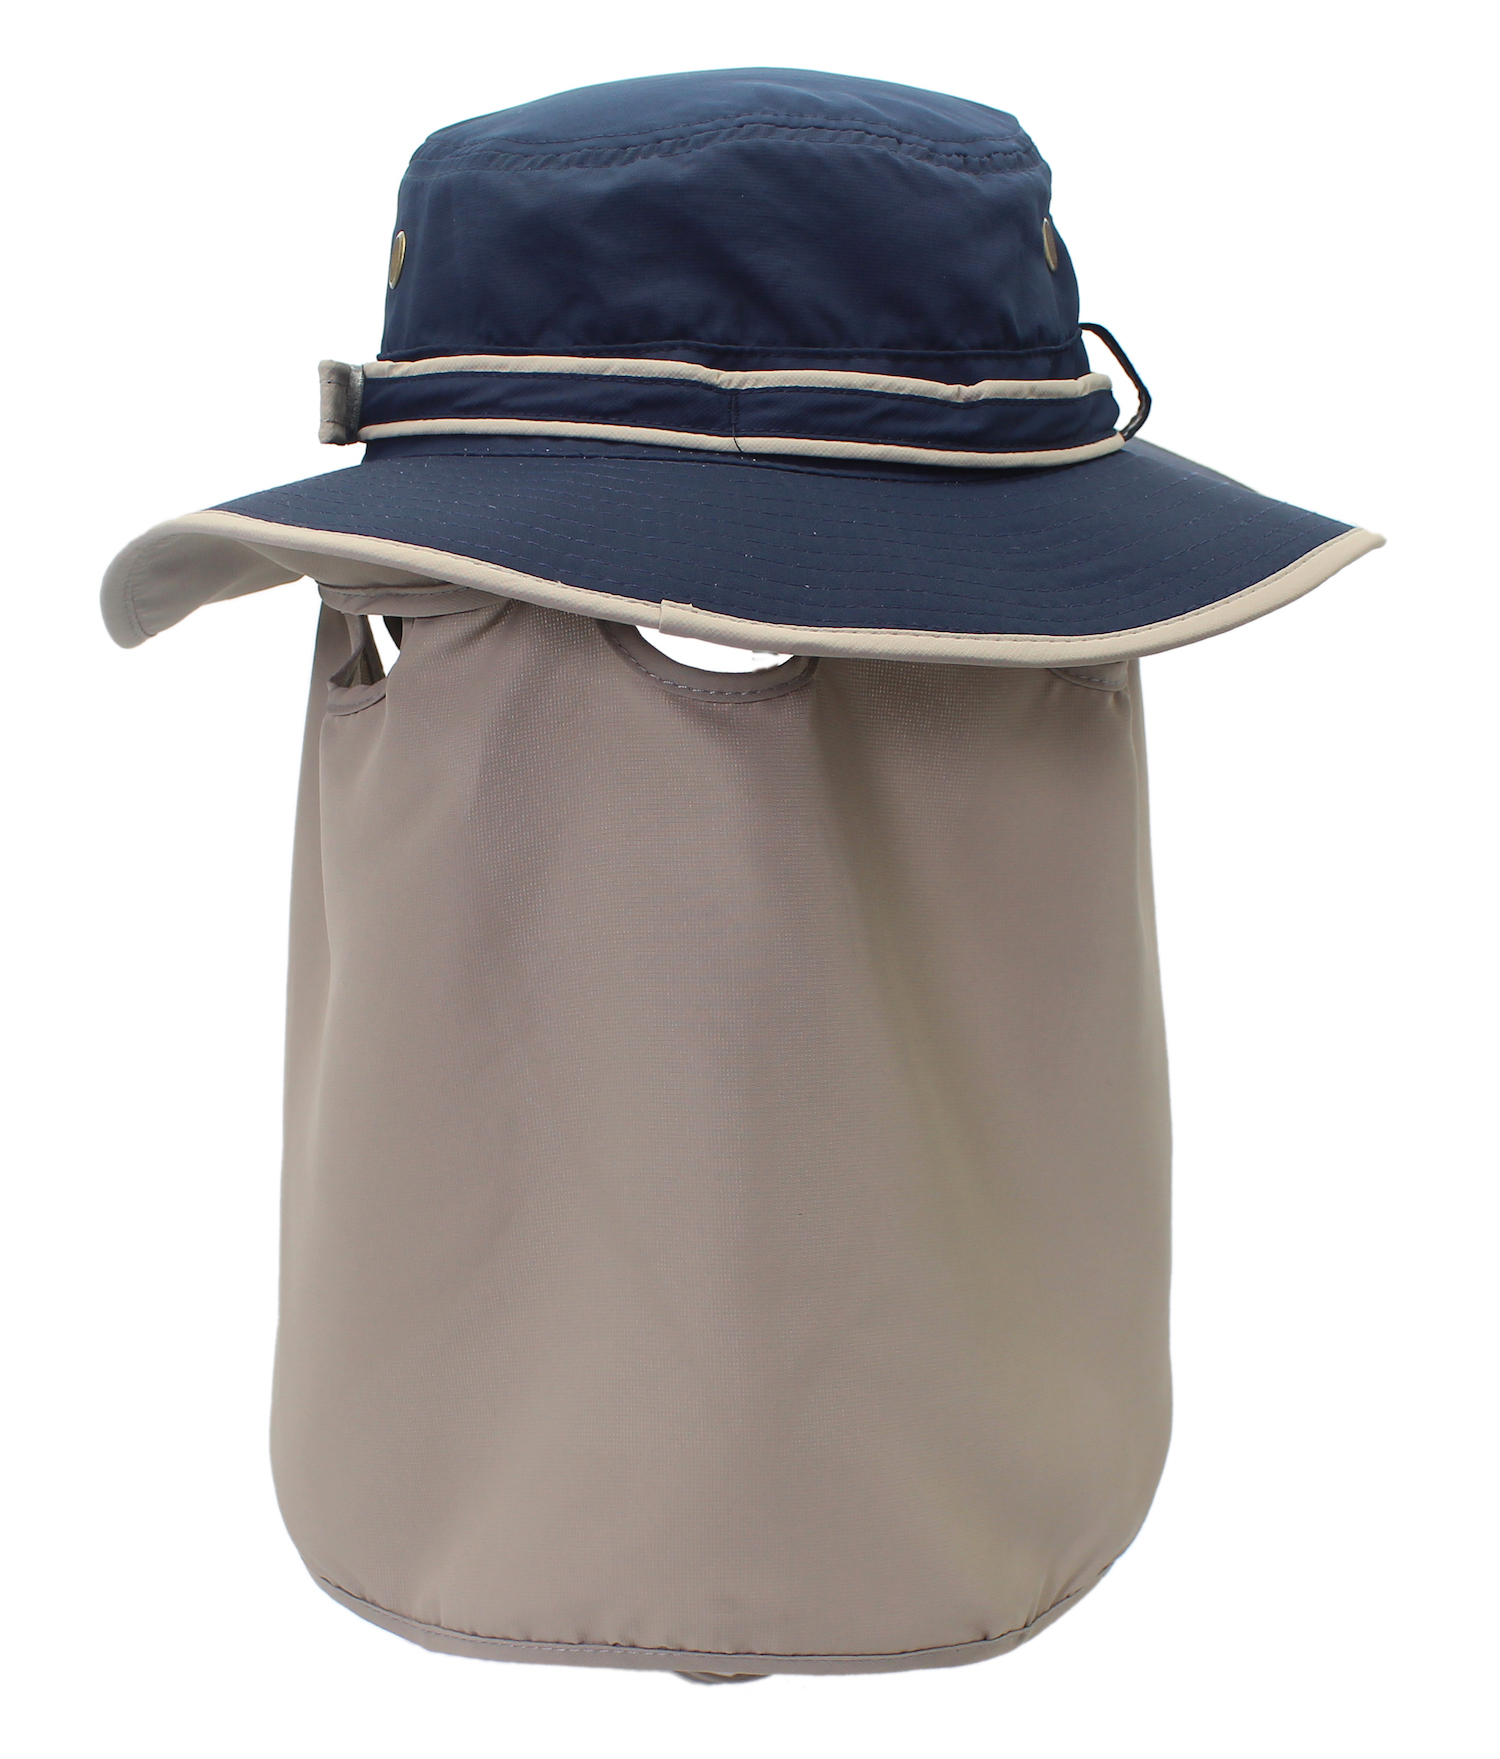 Connectyle Men 39 s Women Summer Quick Drying Wide Brim UV Protection Outdoor Sun Hat with Flap Neck Cover Fishing Cap in Men 39 s Sun Hats from Apparel Accessories